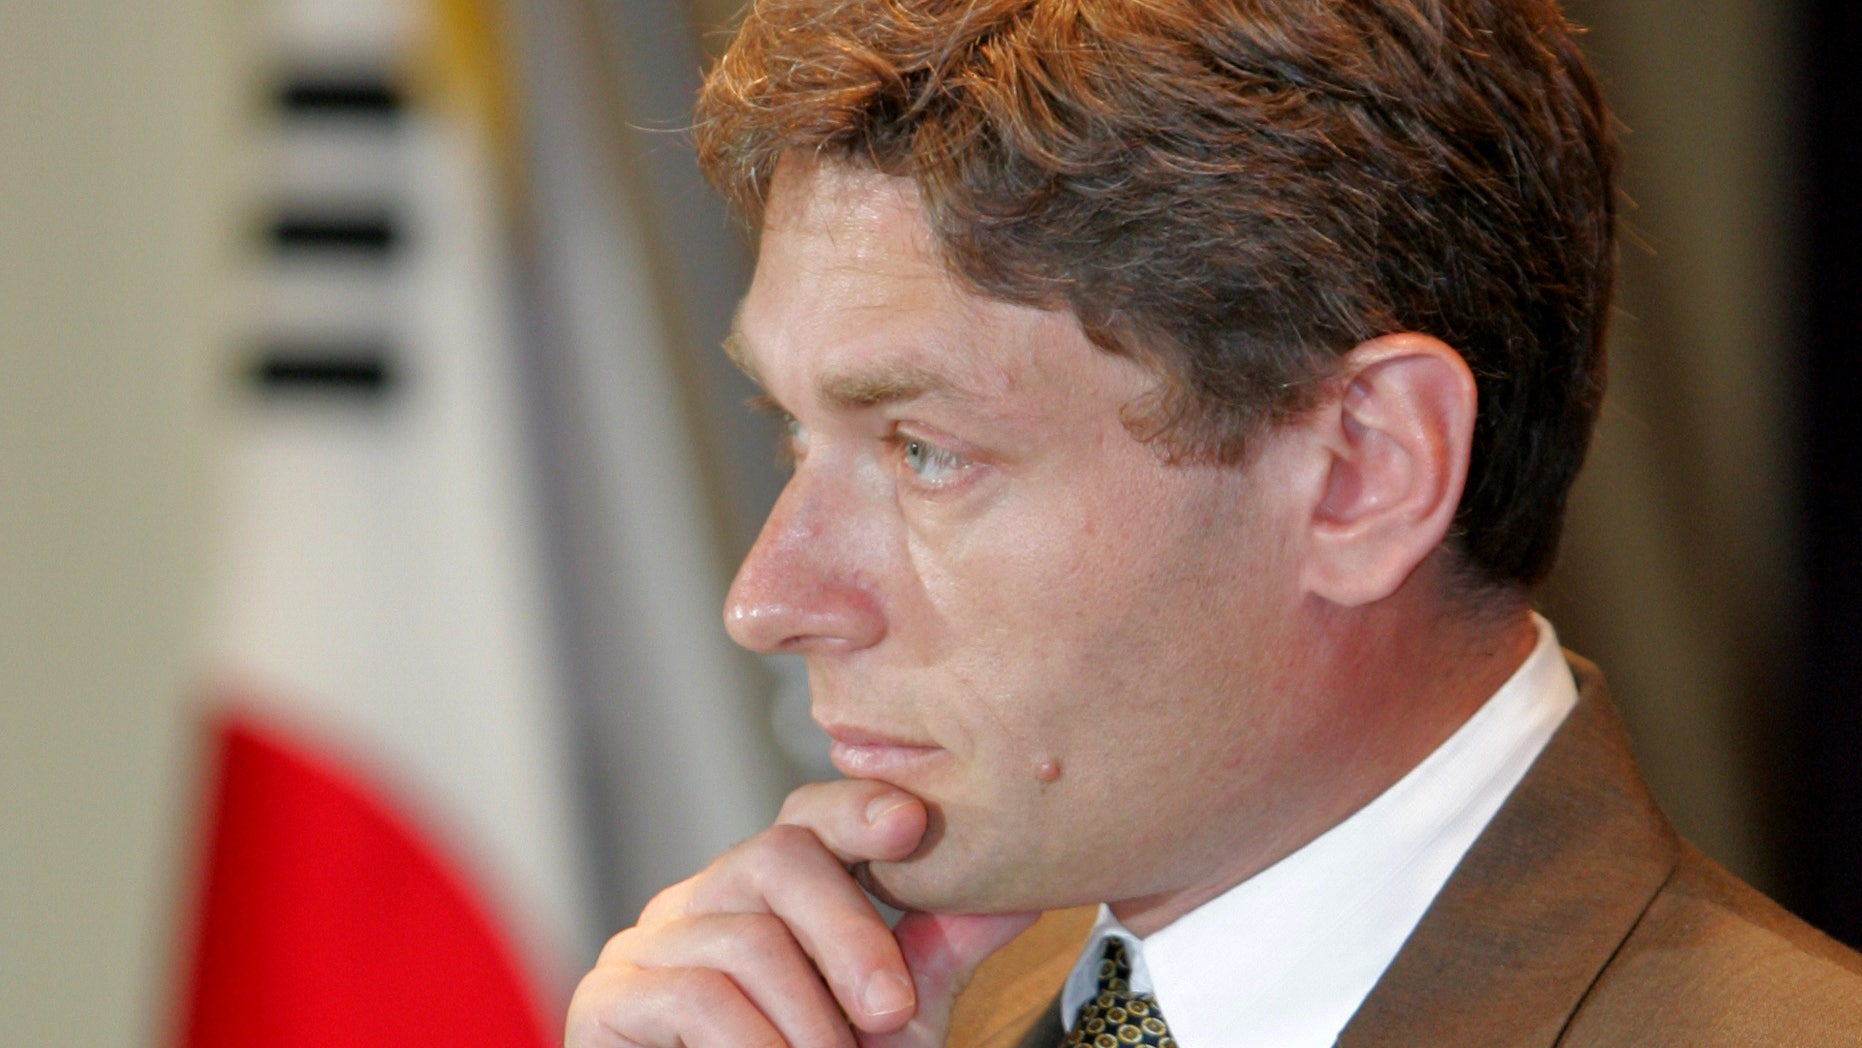 May 4, 2006 - FILE photo of Tom Malinowski, U.S. Assistant Secretary of State for Democracy, Human Rights and Labor, who  been asked to leave Bahrain, just a day after meeting with a leading Shiite opposition group.